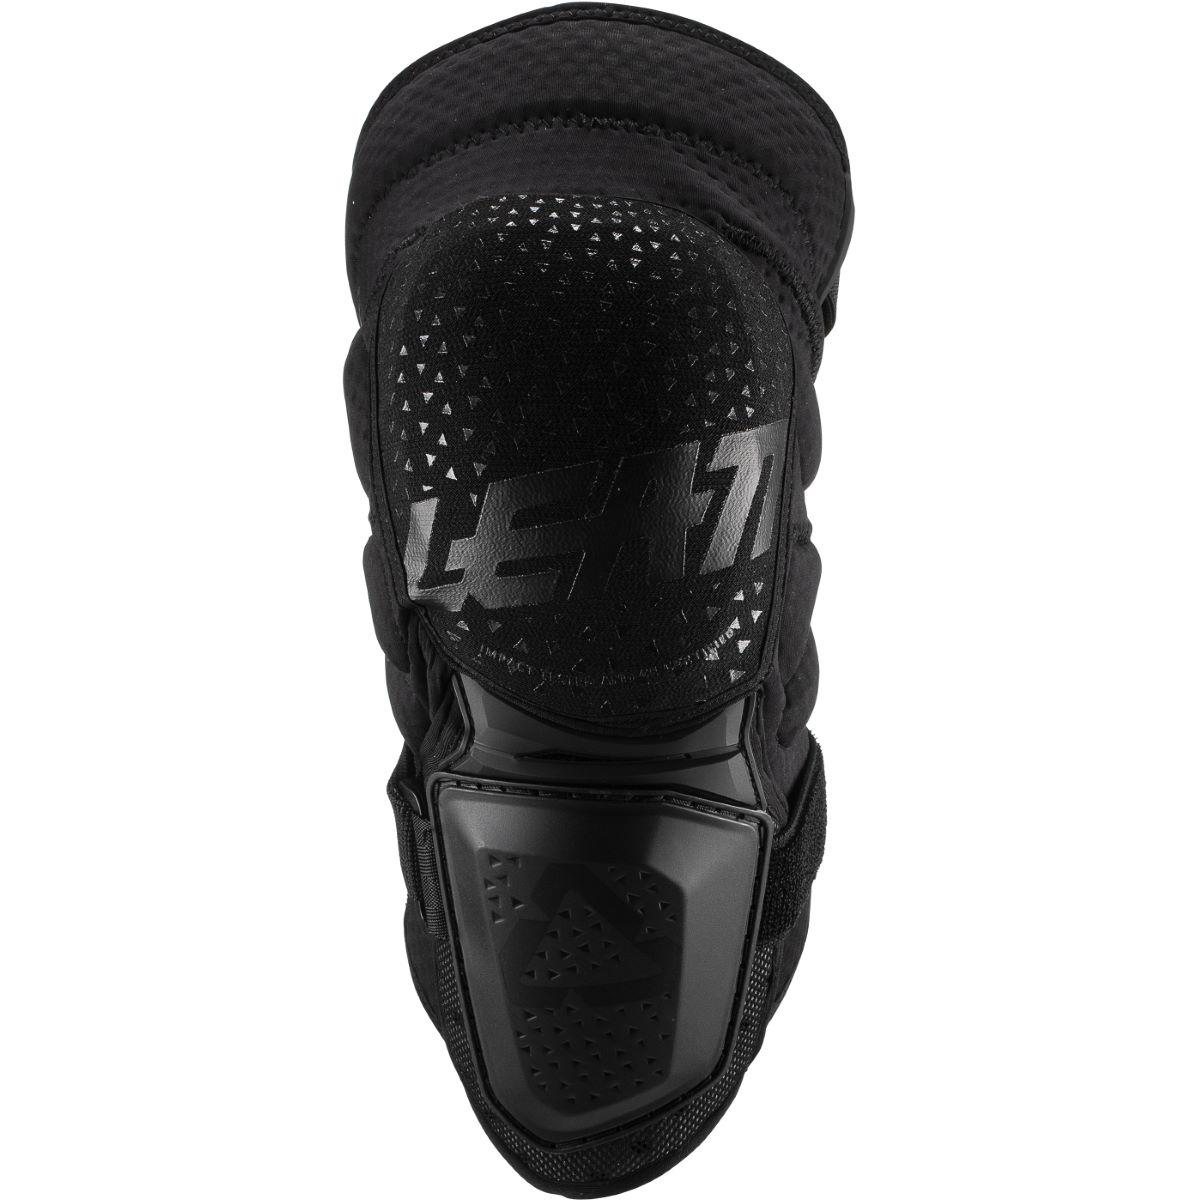 Наколенники Leatt Knee Guard 3DF Hybrid Blk L/XL